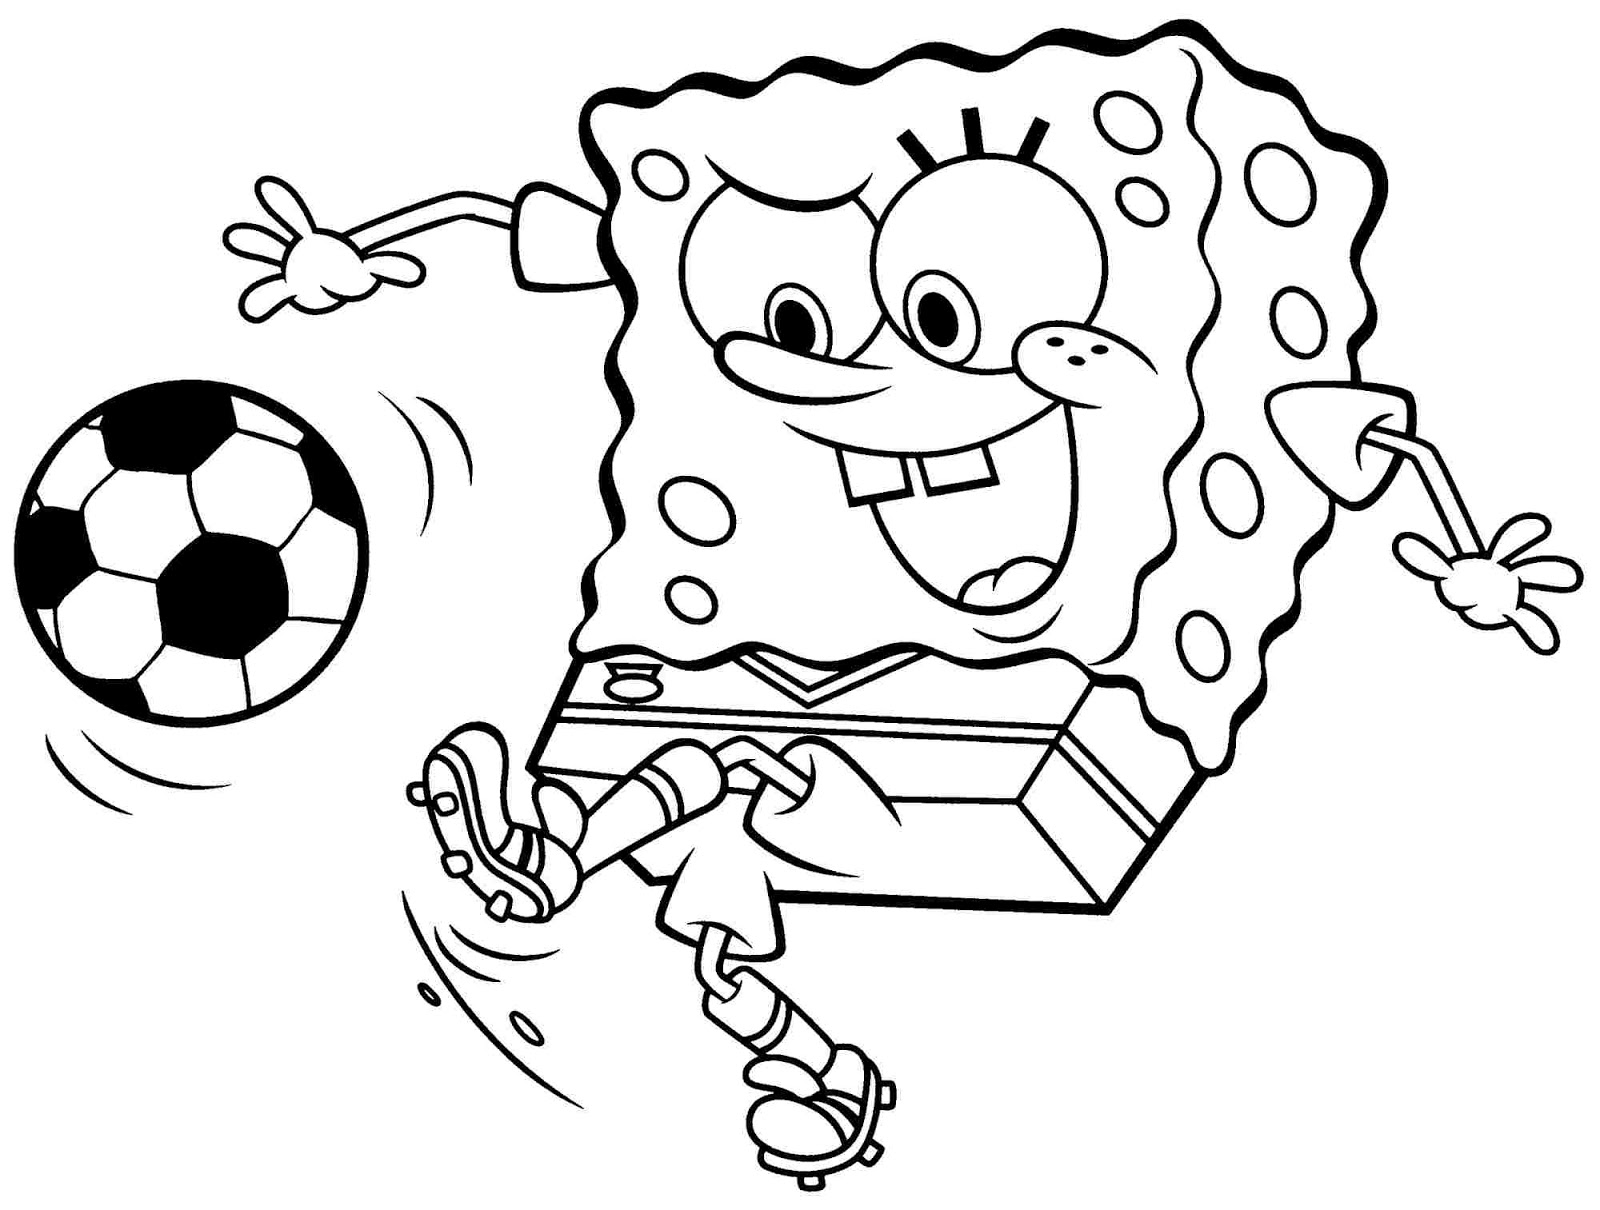 Paginas Para Colorear Gratis: Spongebob Coloring Pages Free